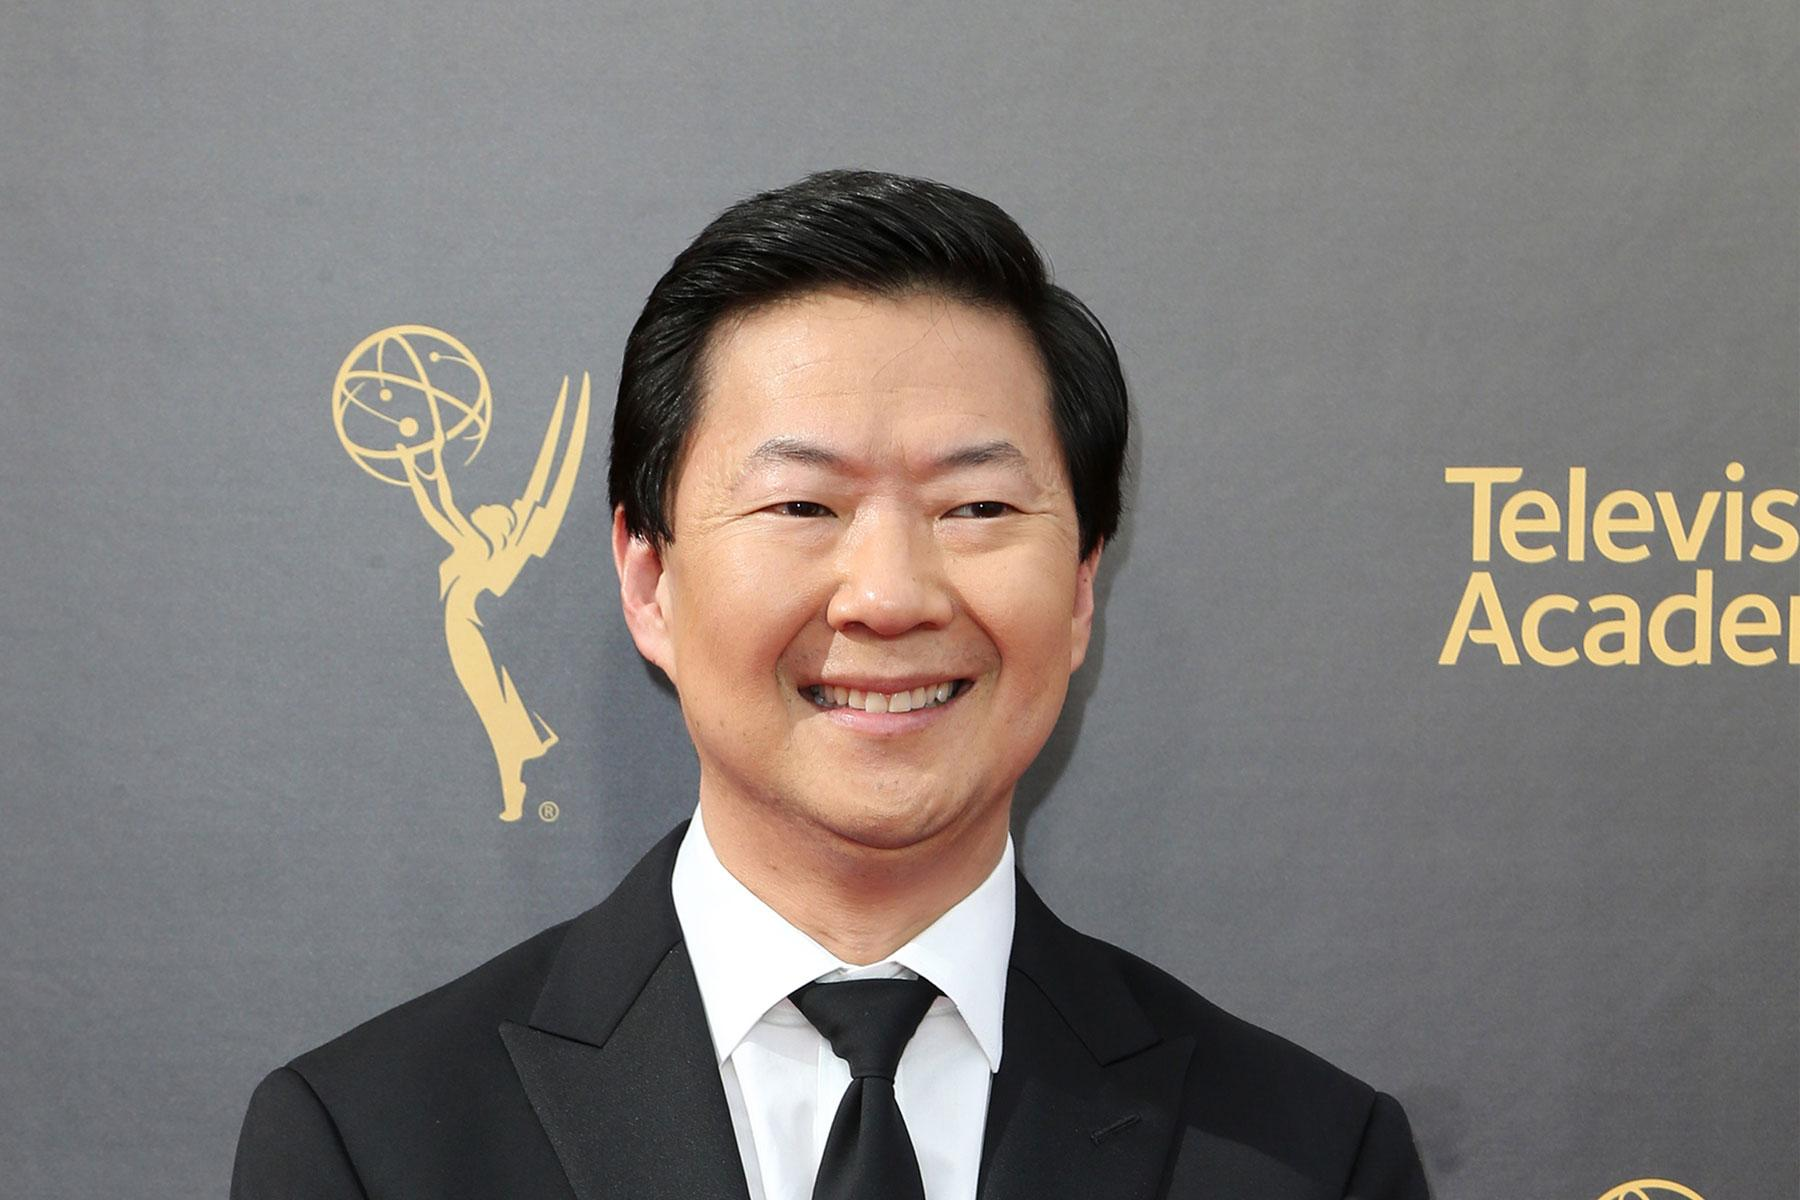 Apart from being an actor, Ken jeong is one celebrity with an amazing double life. He also a licensed medical practitioner